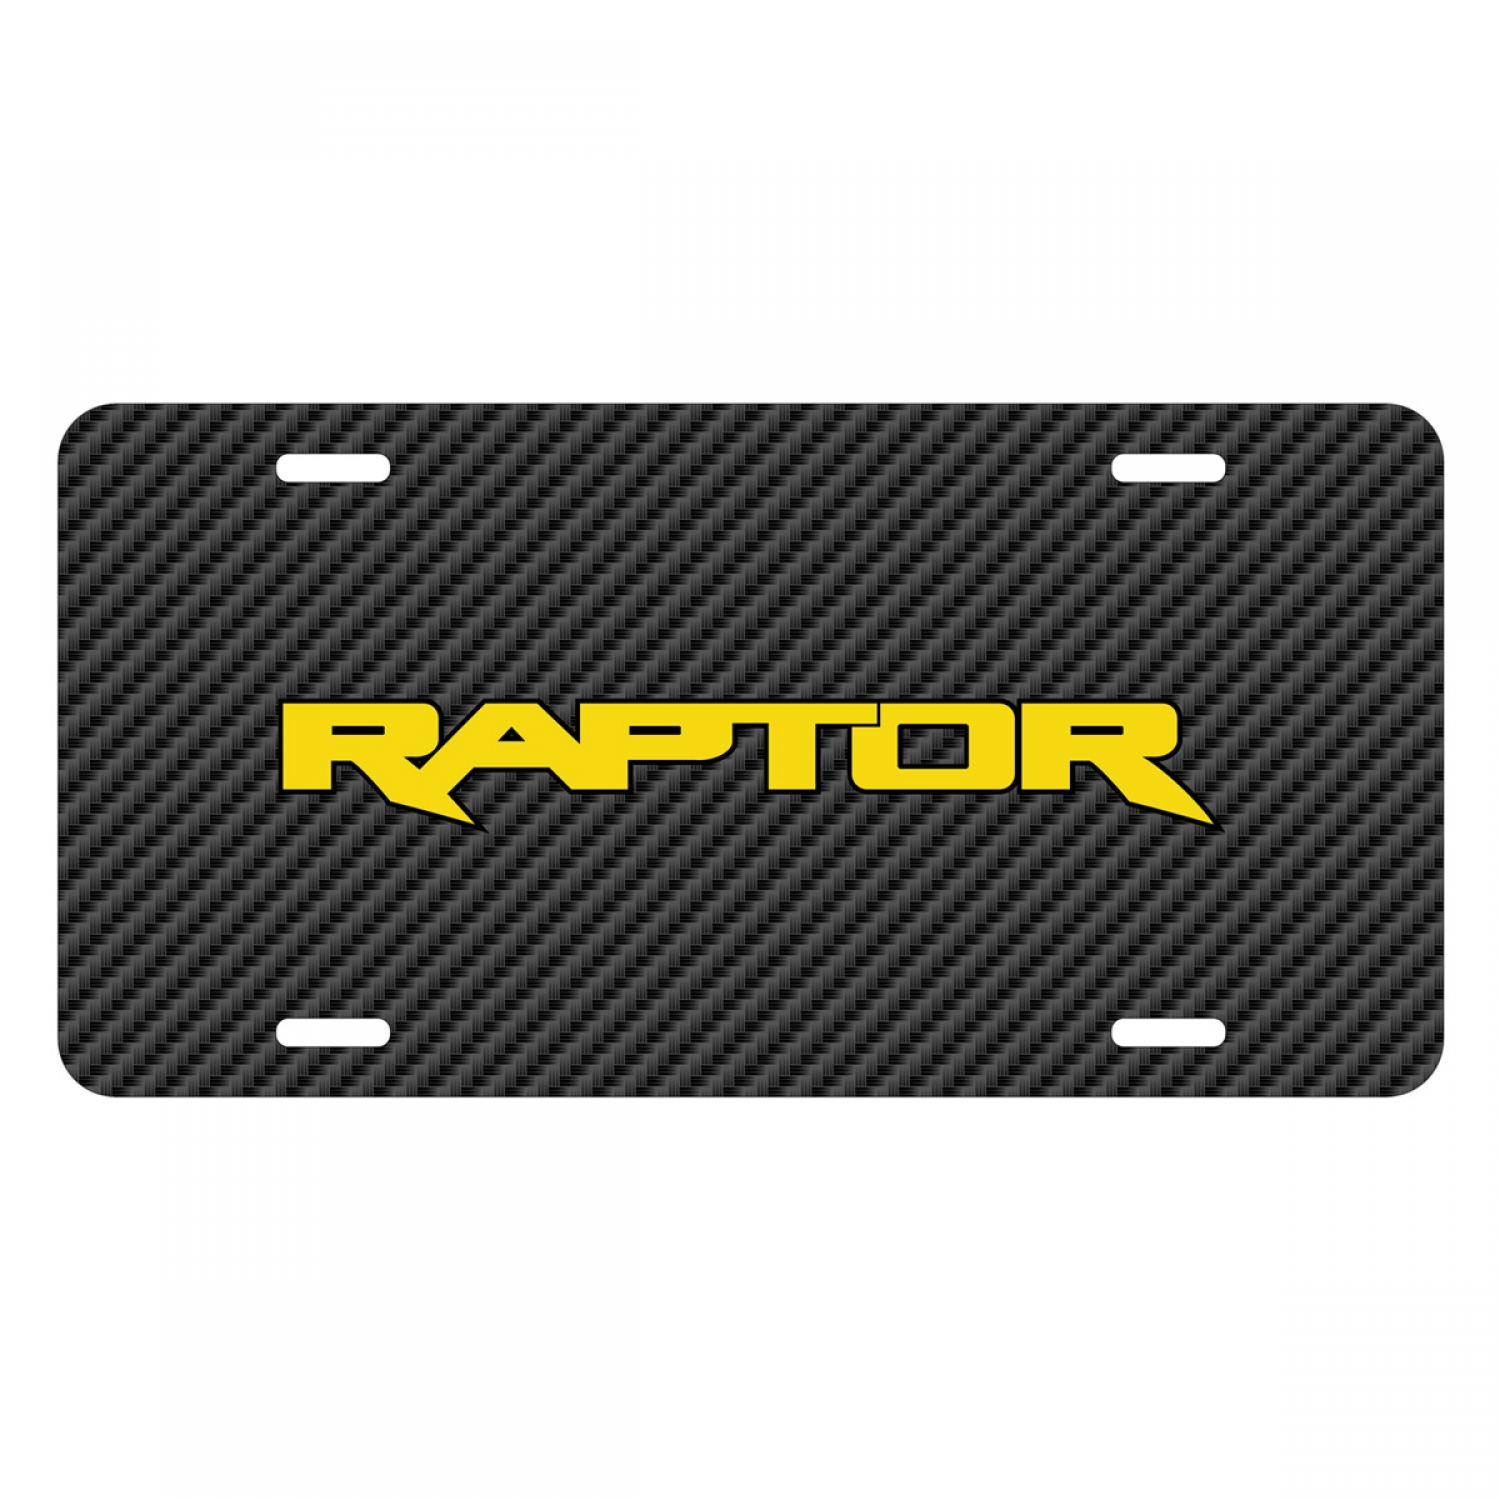 Ford F-150 Raptor 2017 in Yellow Black Carbon Fiber Texture Graphic UV Metal License Plate